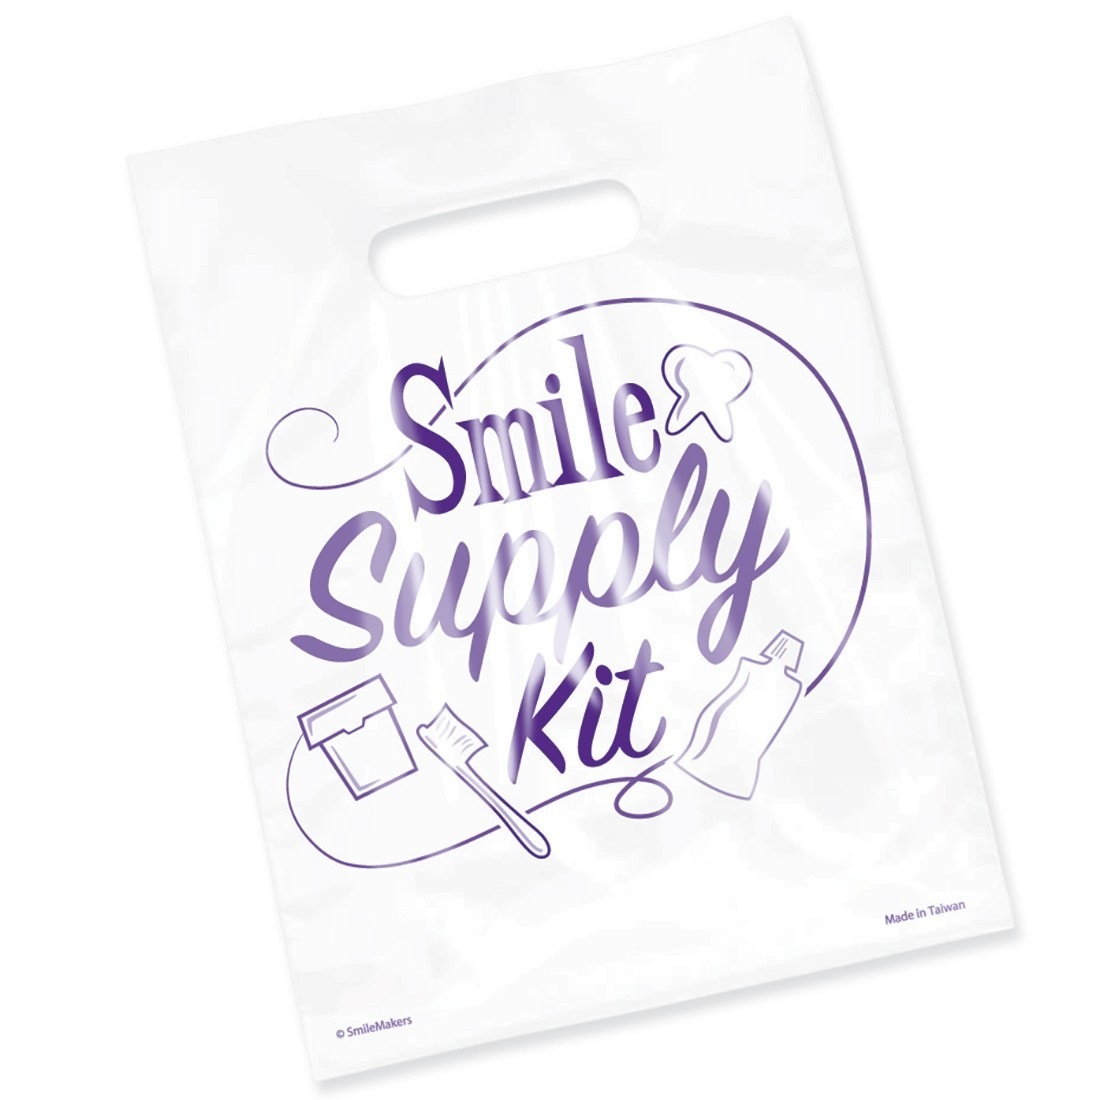 Clear Smile Supply Kit Bags                        [image]